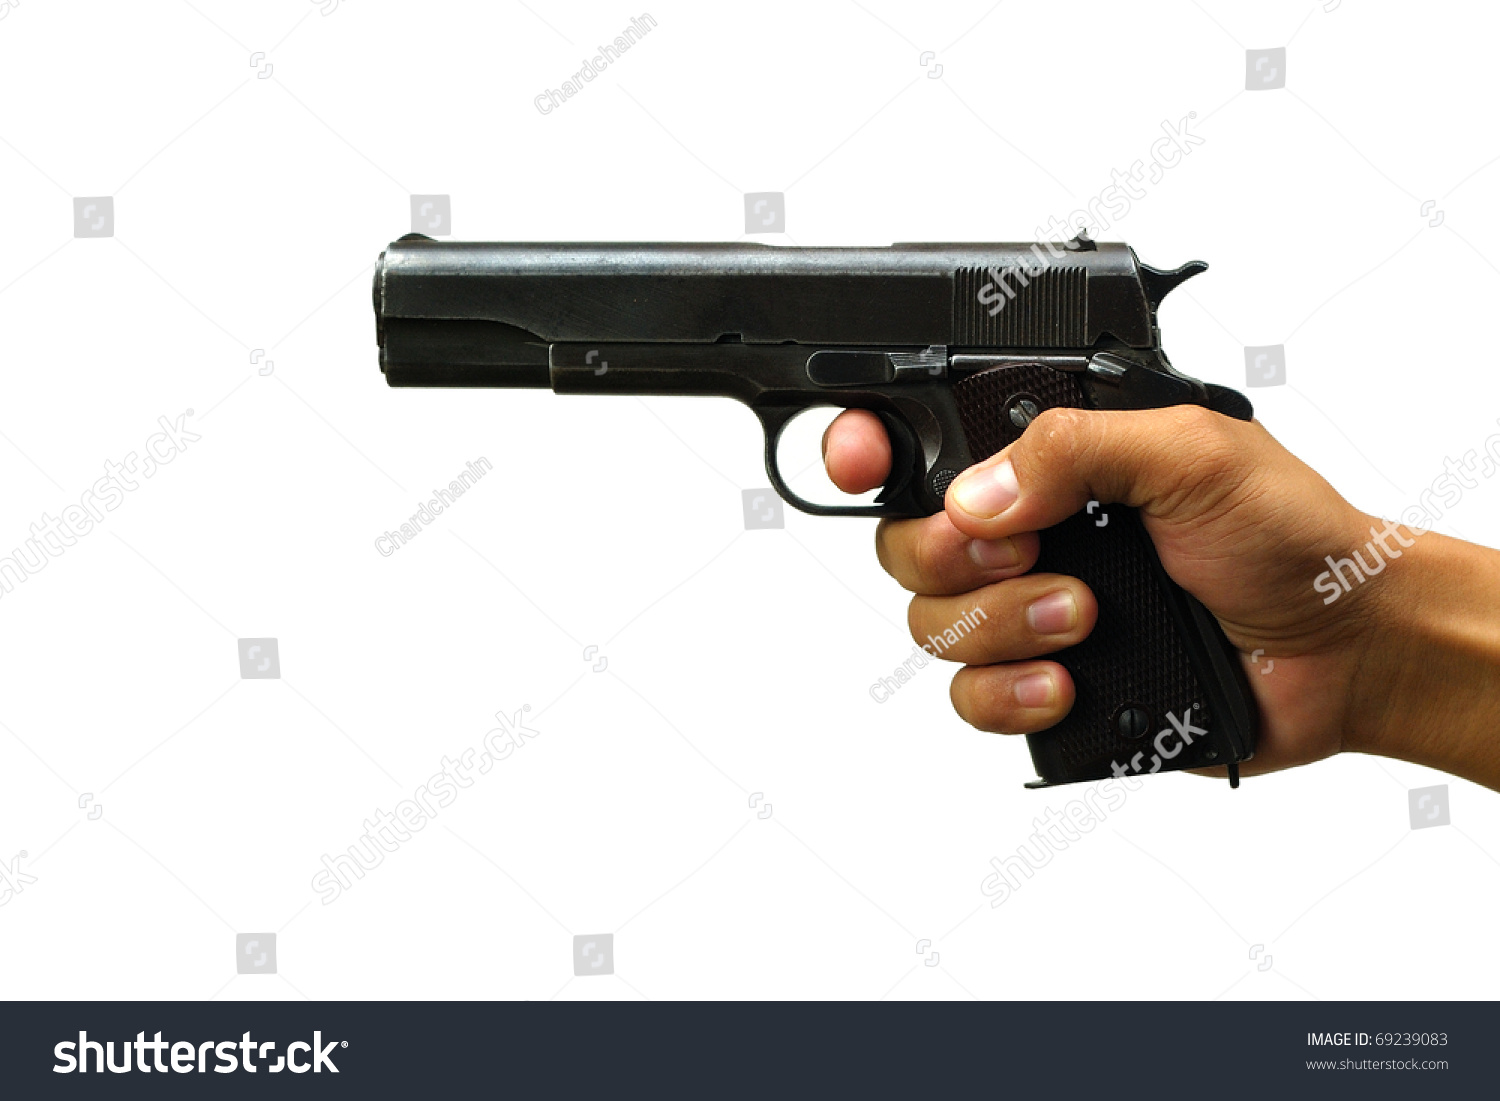 gun white background - photo #44